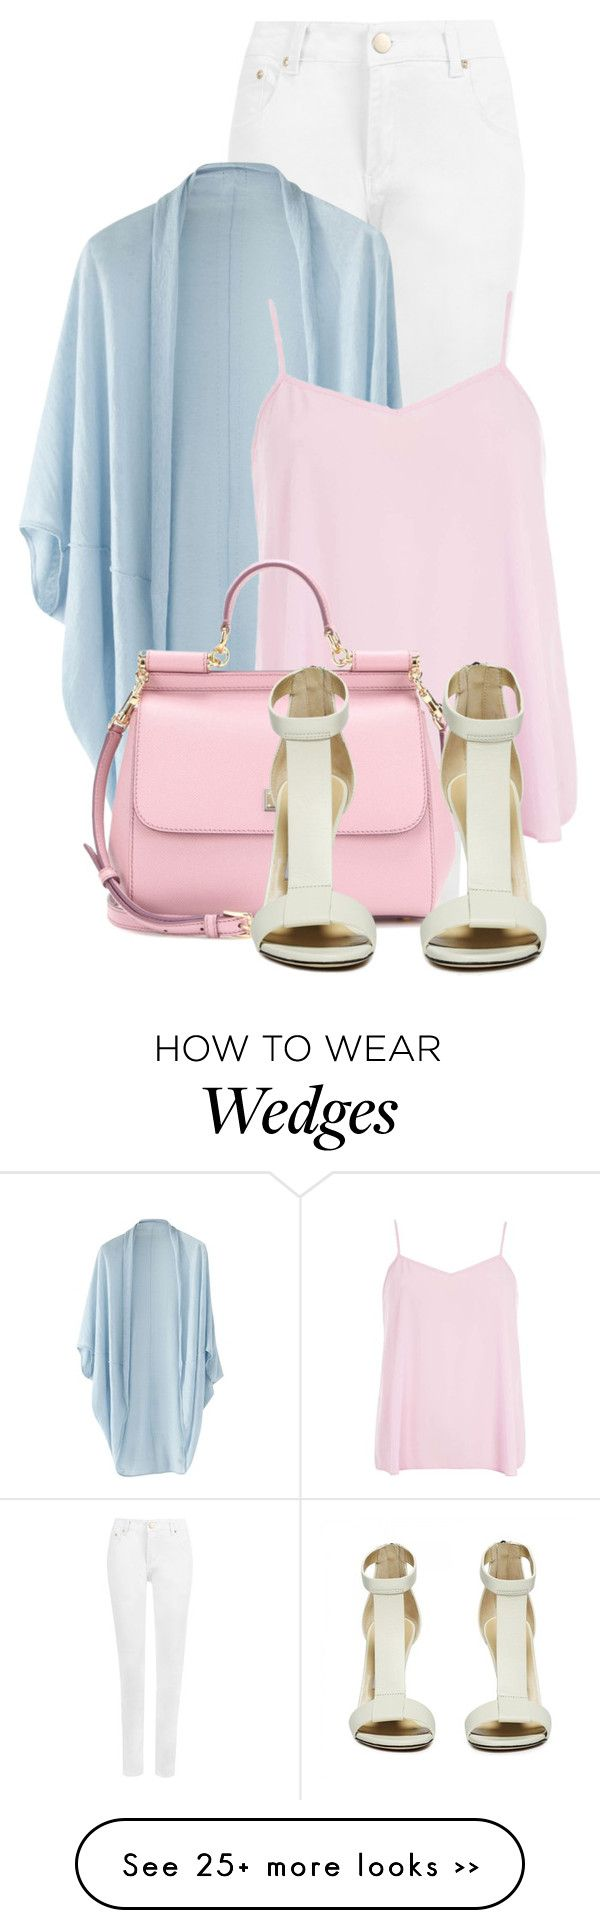 """""""Today's style"""" by andreastoessel on Polyvore"""